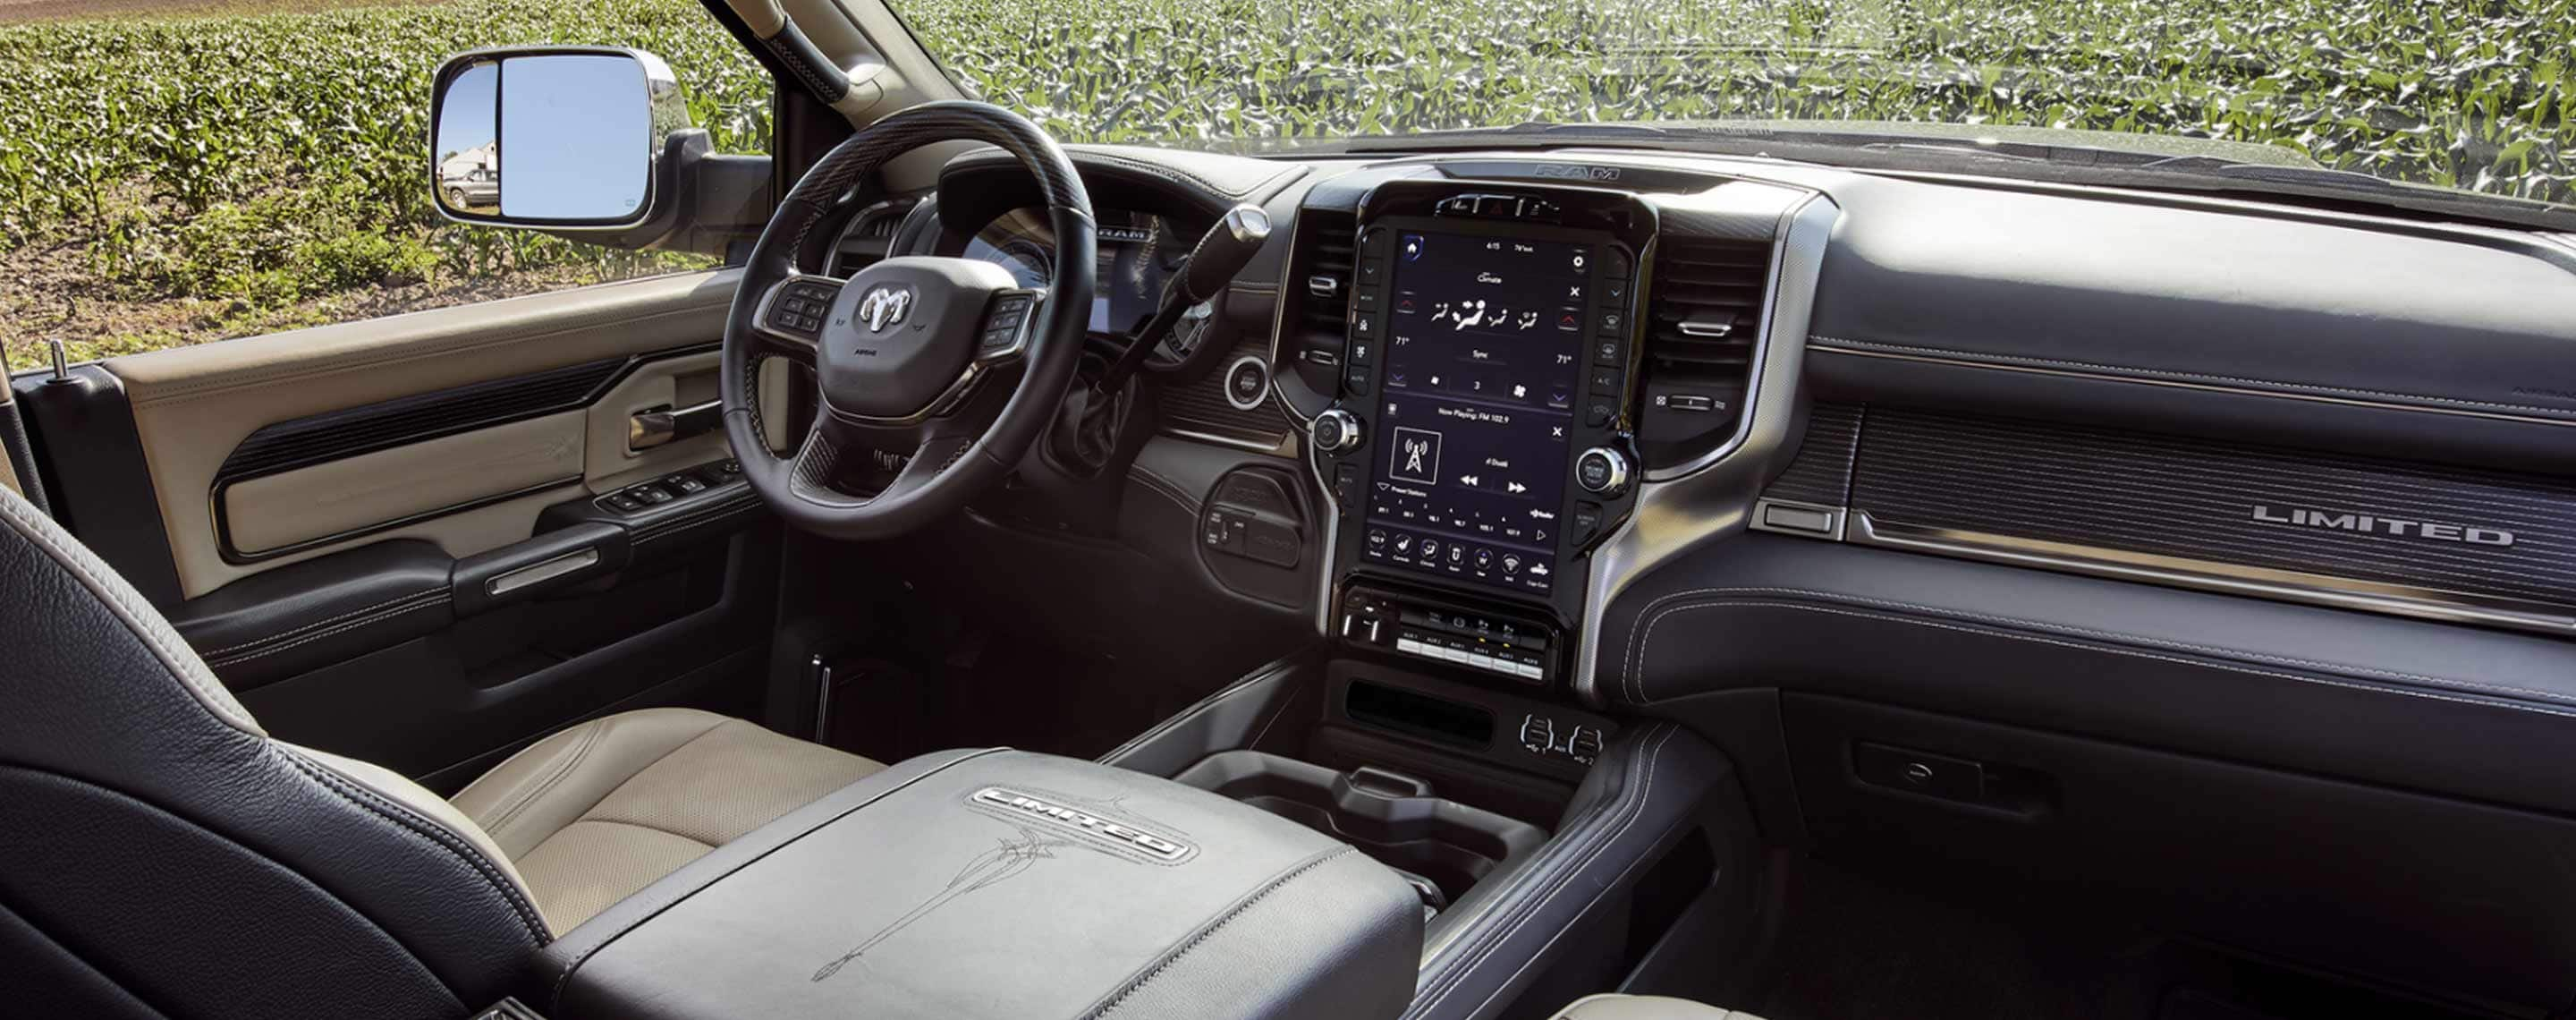 Uconnect System - Hands-Free Navigation & More - Ram Trucks